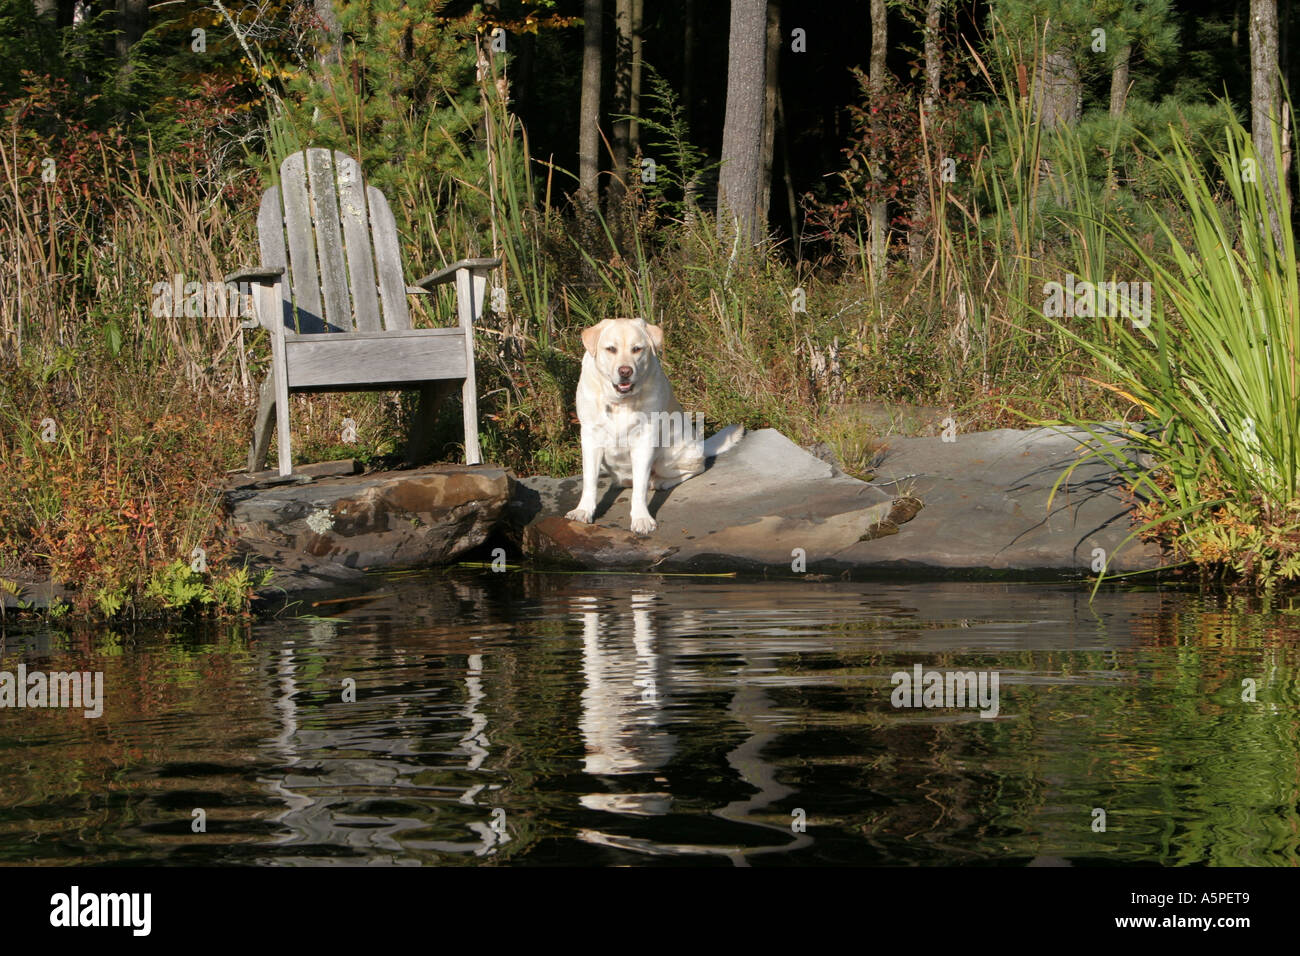 Yellow lab, Gracie, one of several kinds of retriever, is gentle, good natured and waits patiently for her ride across the lake - Stock Image